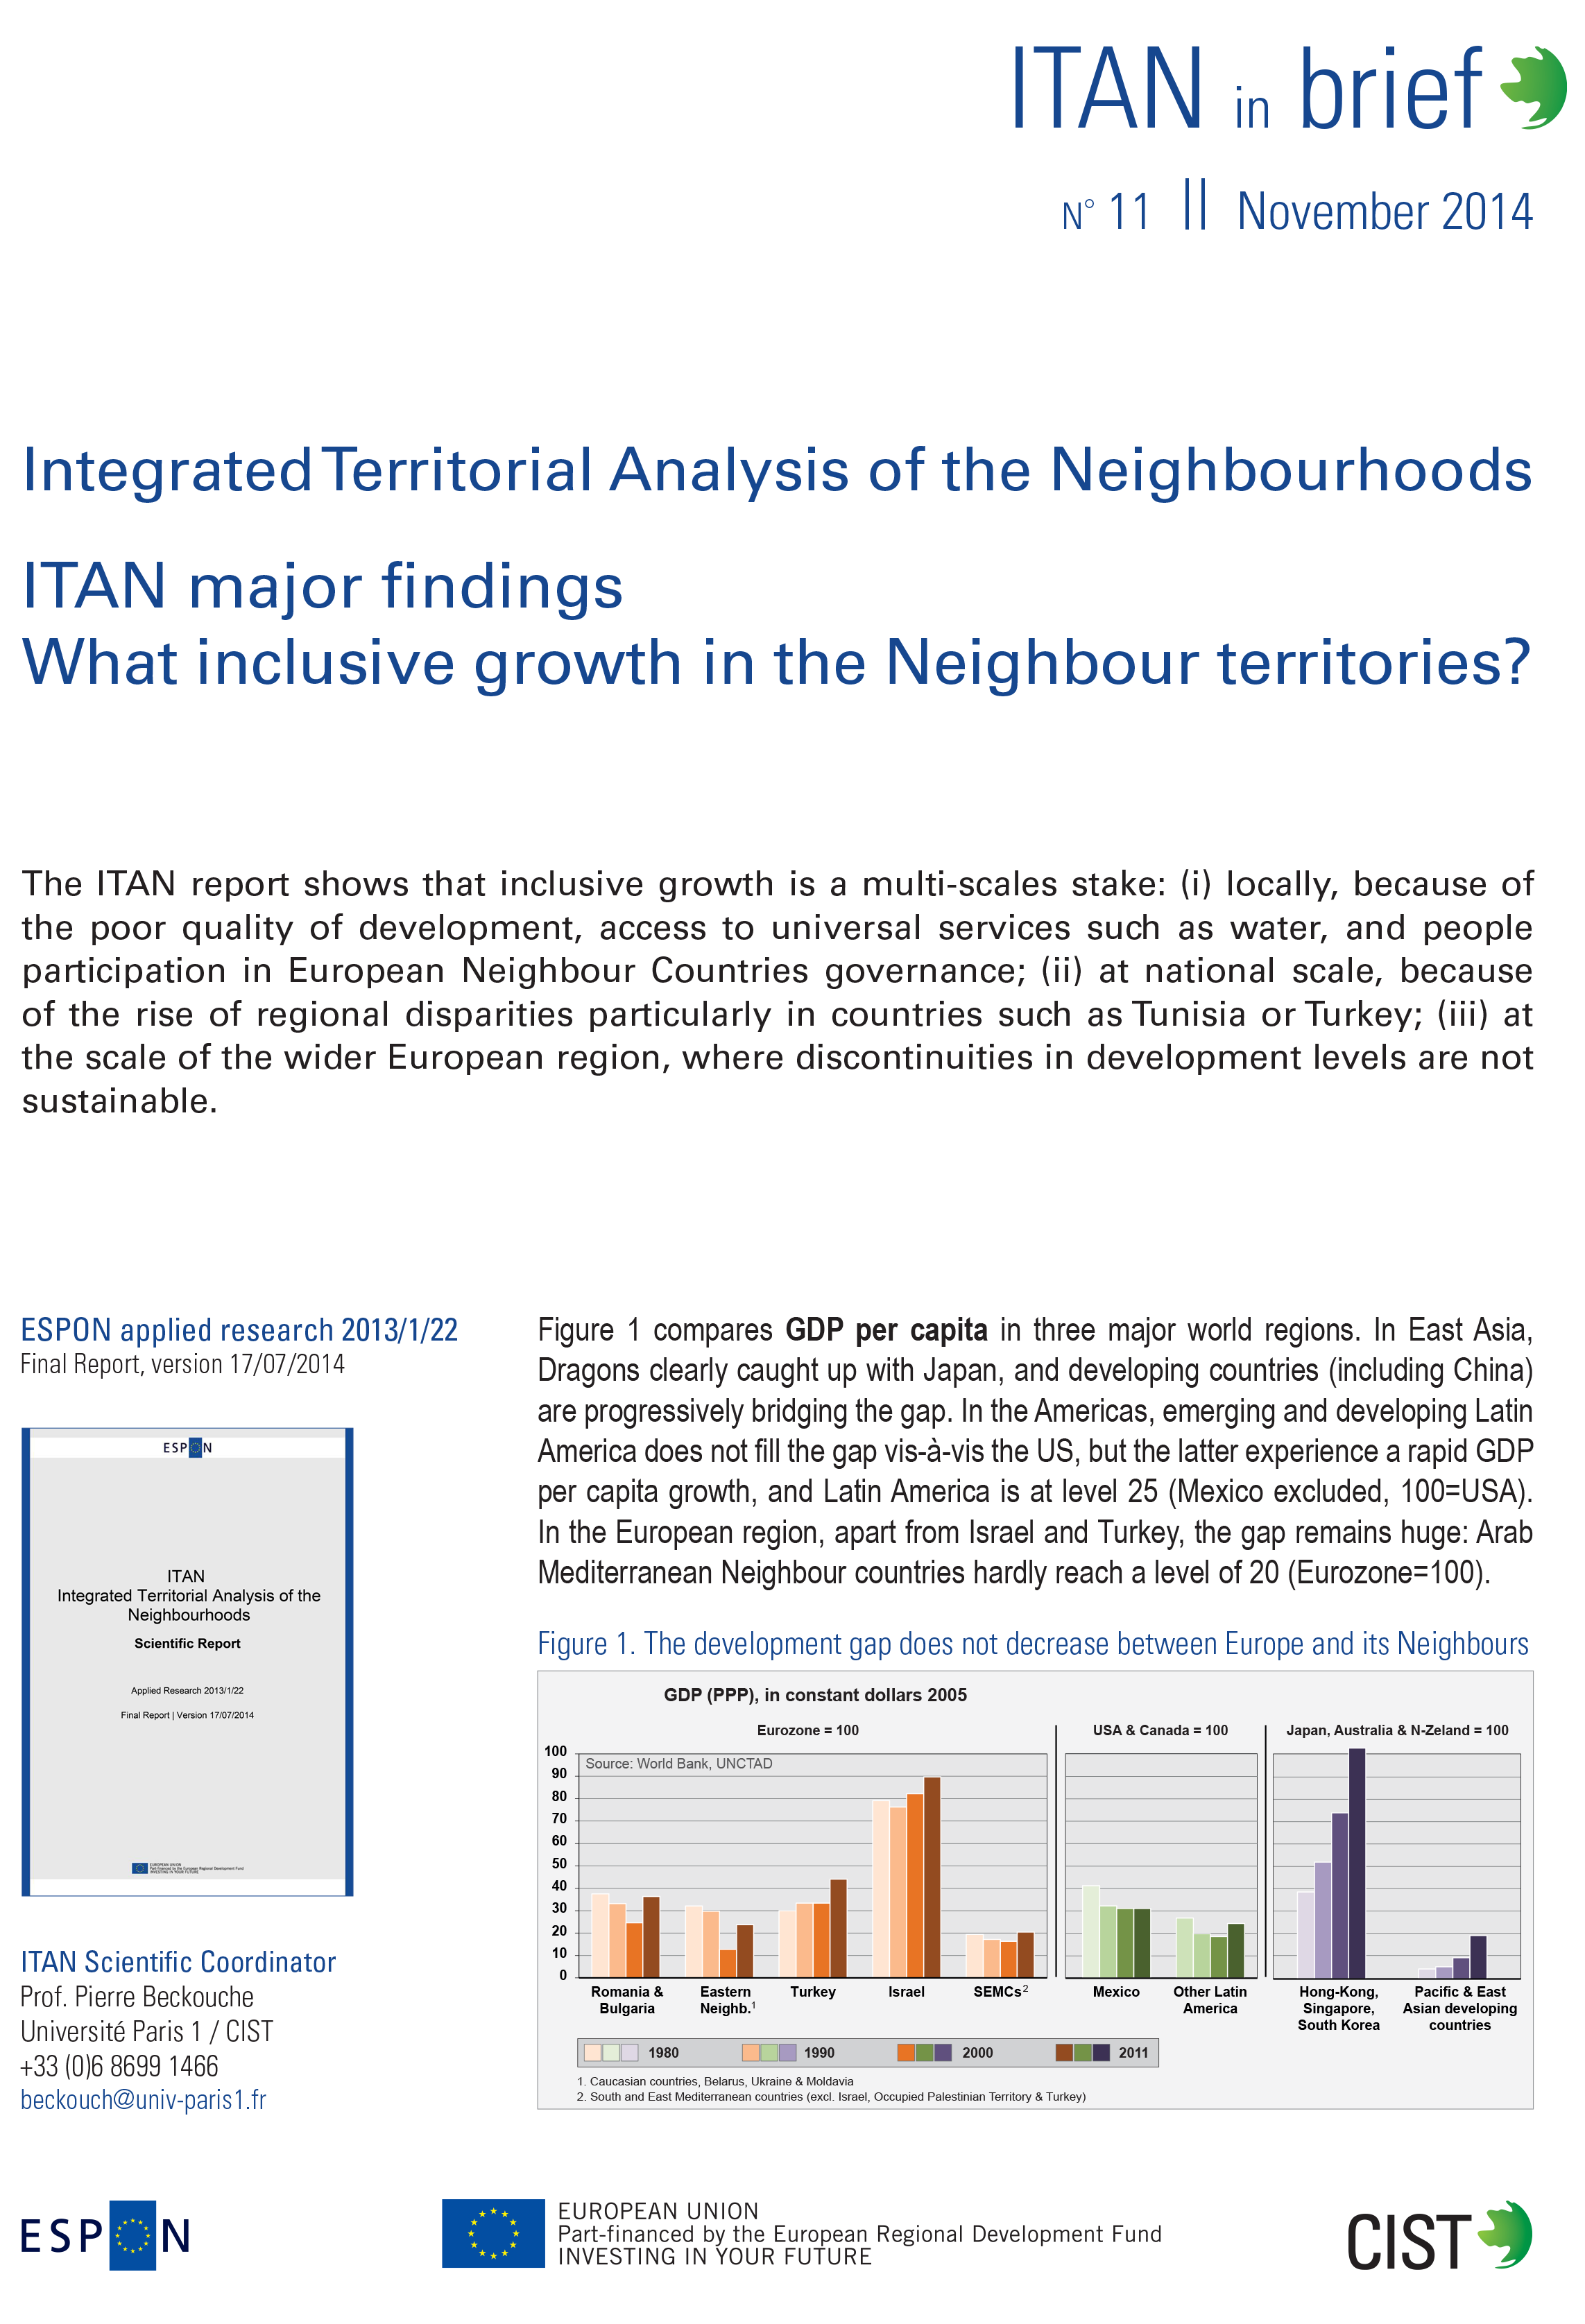 ITAN in brief n. 11, What Inclusive Growth in the Neighbour Territories, October 2014